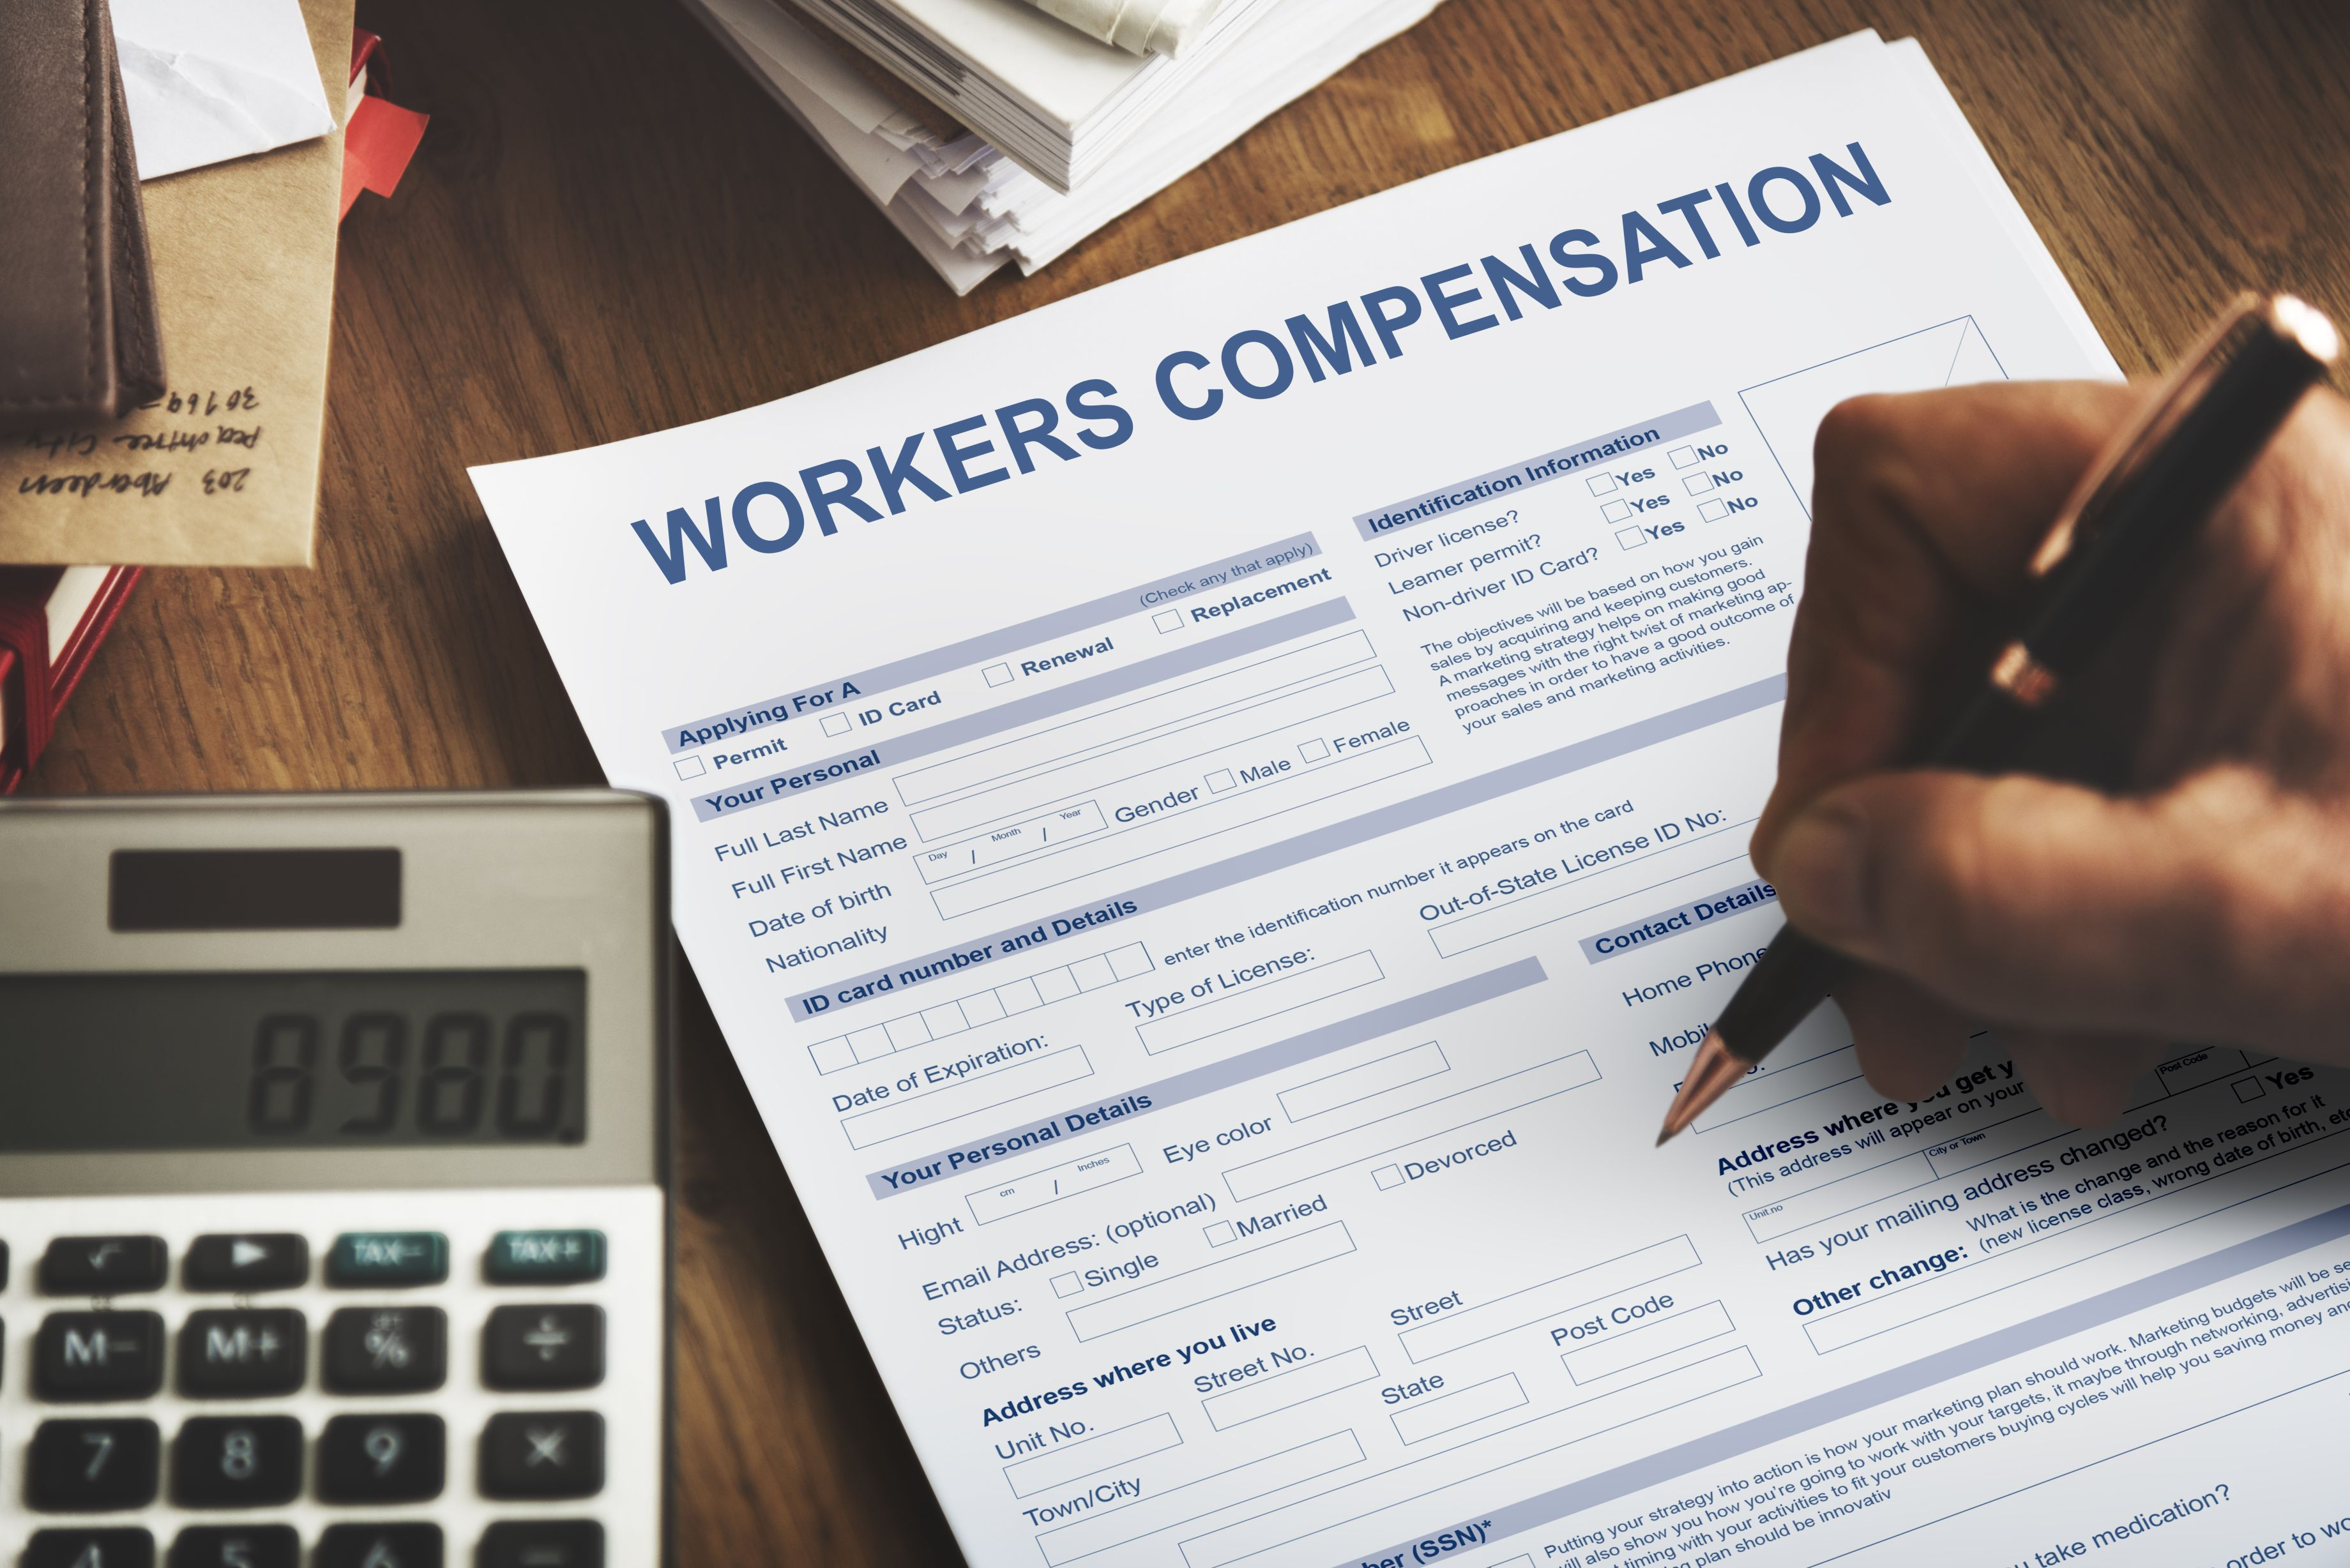 Insurance - Workers Compensation